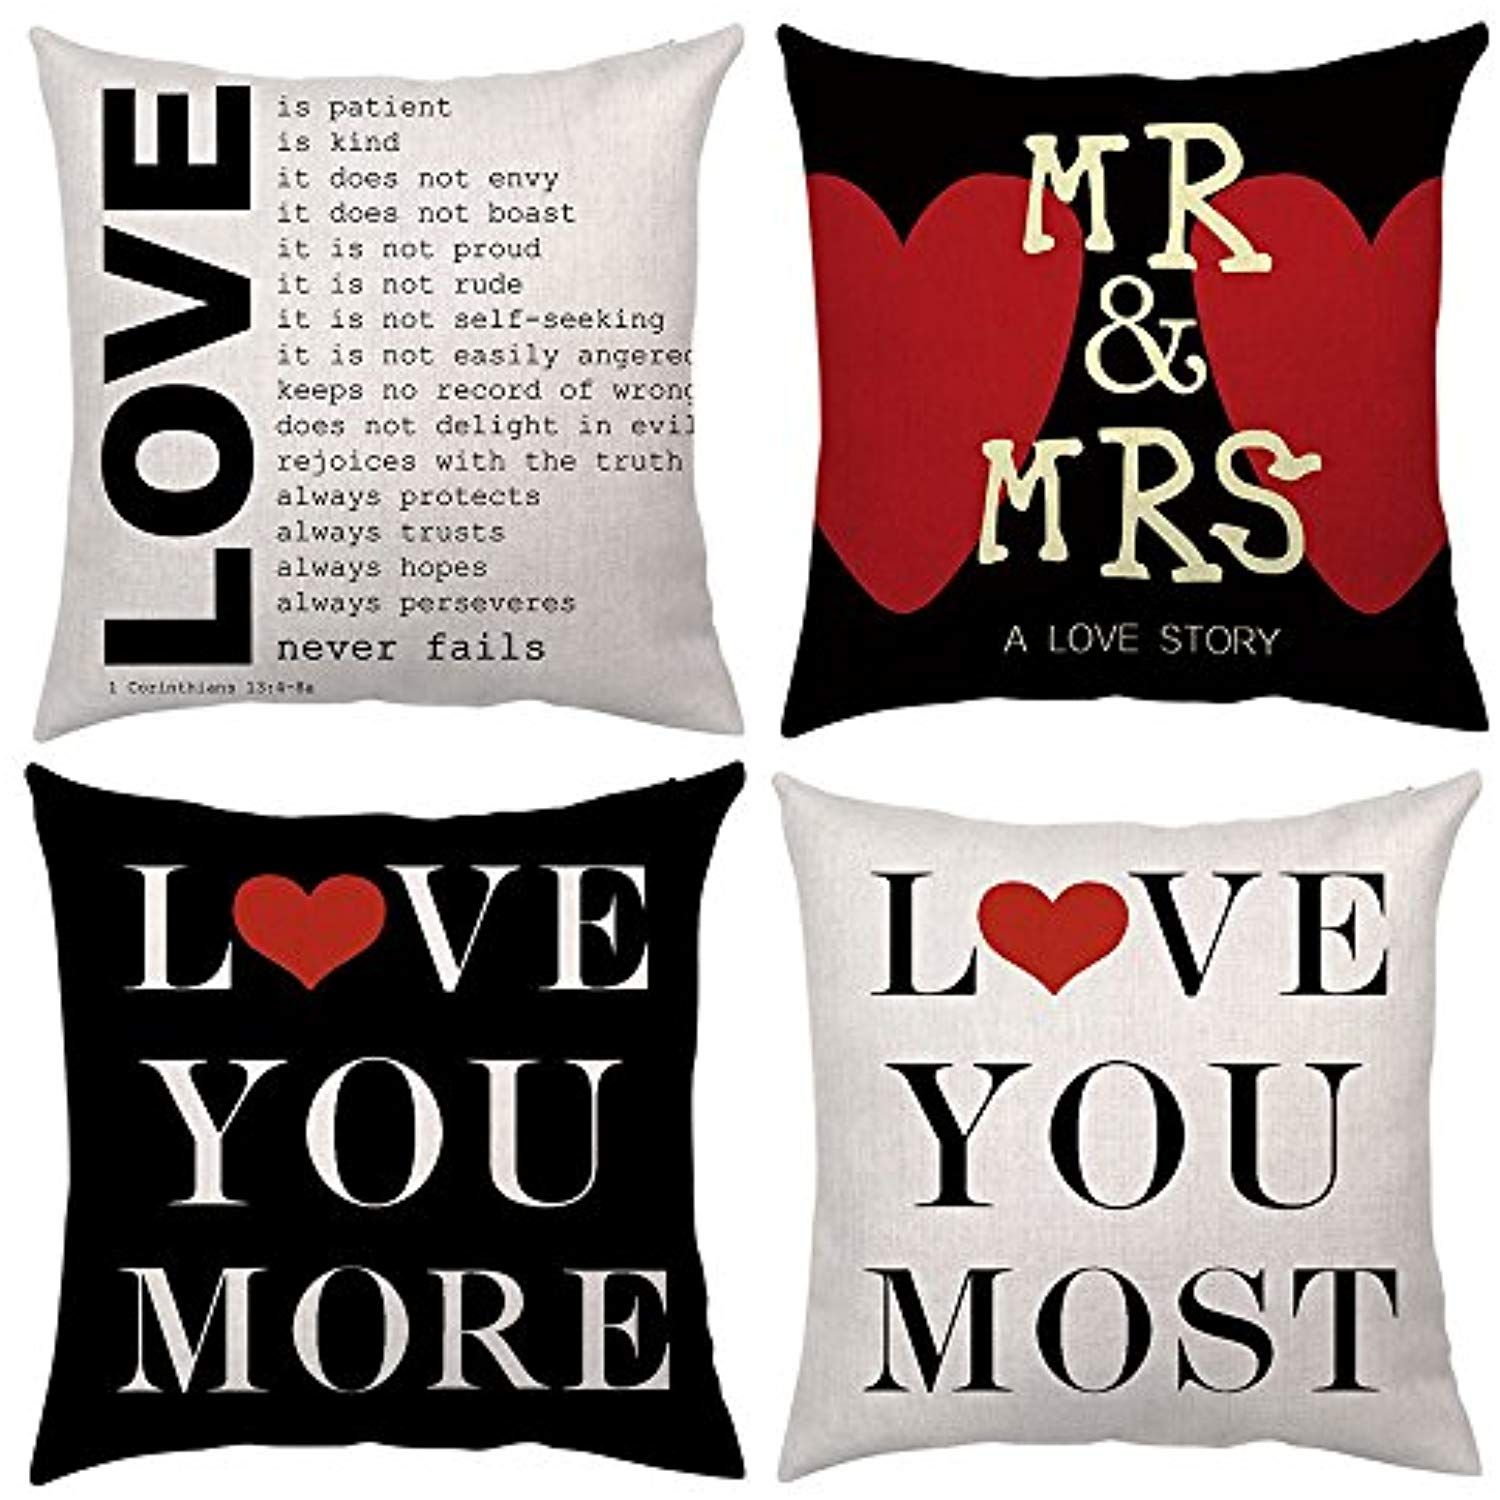 Love Quotes Throw Pillow Case Decorative Cushion Covers Pillows Love You More Most Mr Mrs Cot Decorative Cushion Covers Quote Throw Pillow Throw Pillow Cases